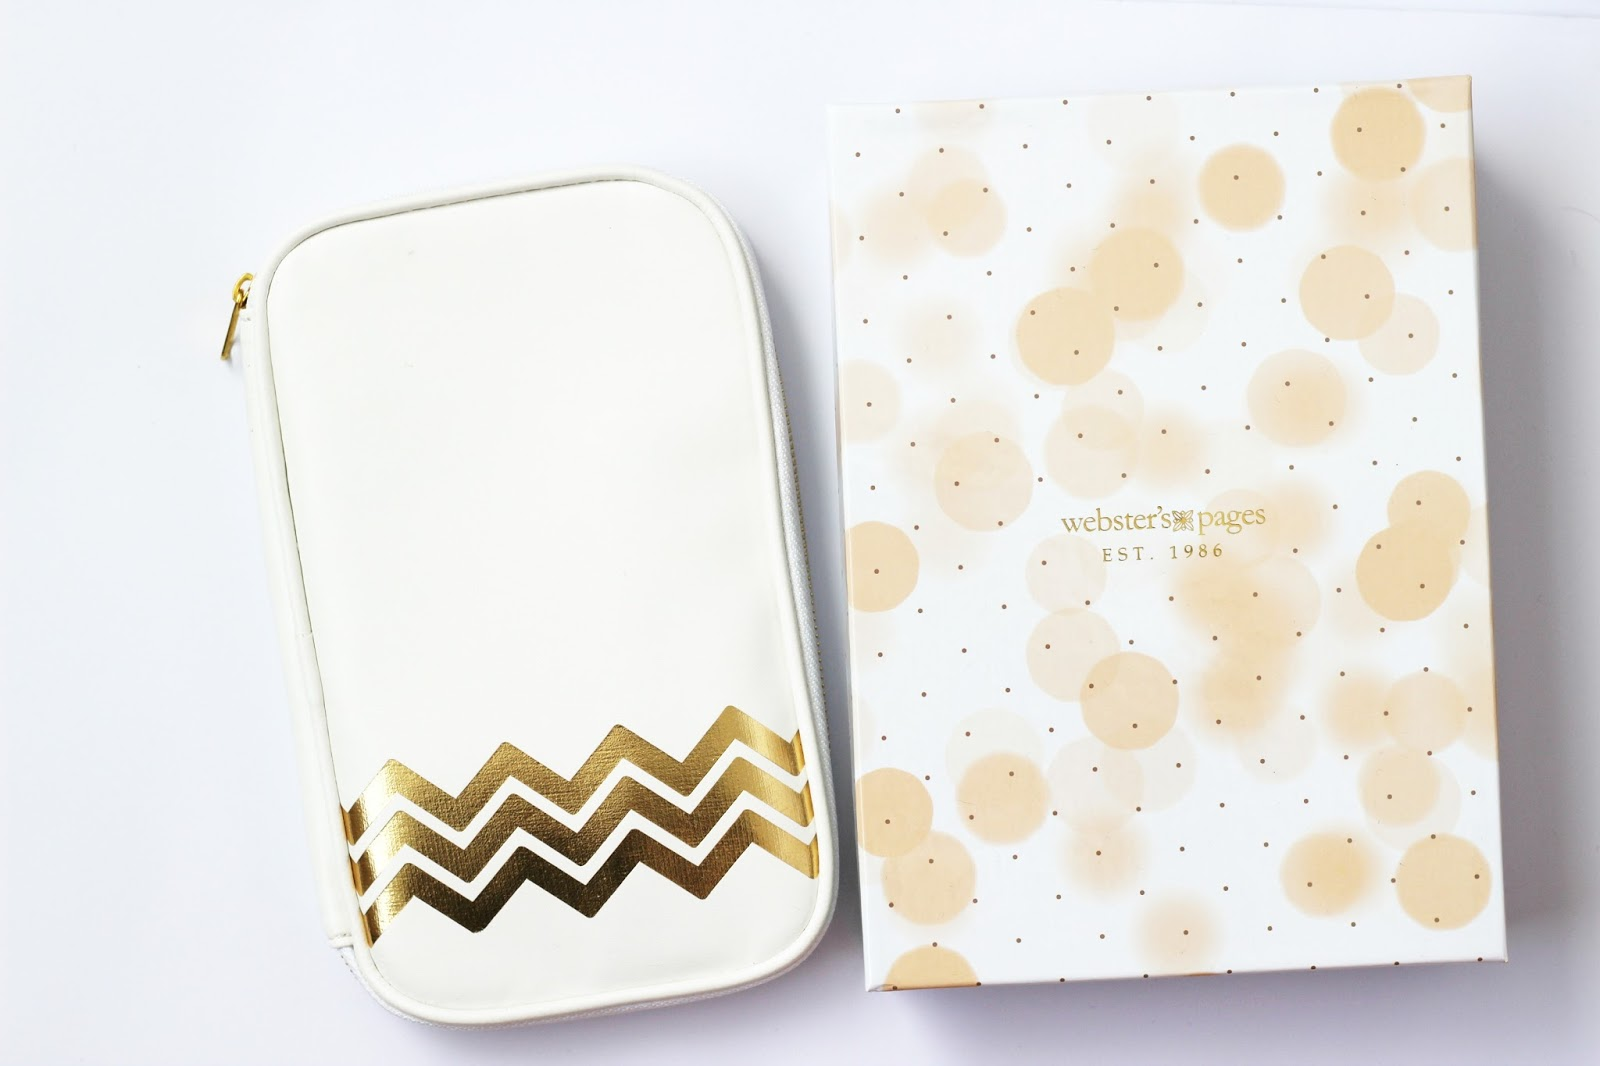 white and gold websters folio